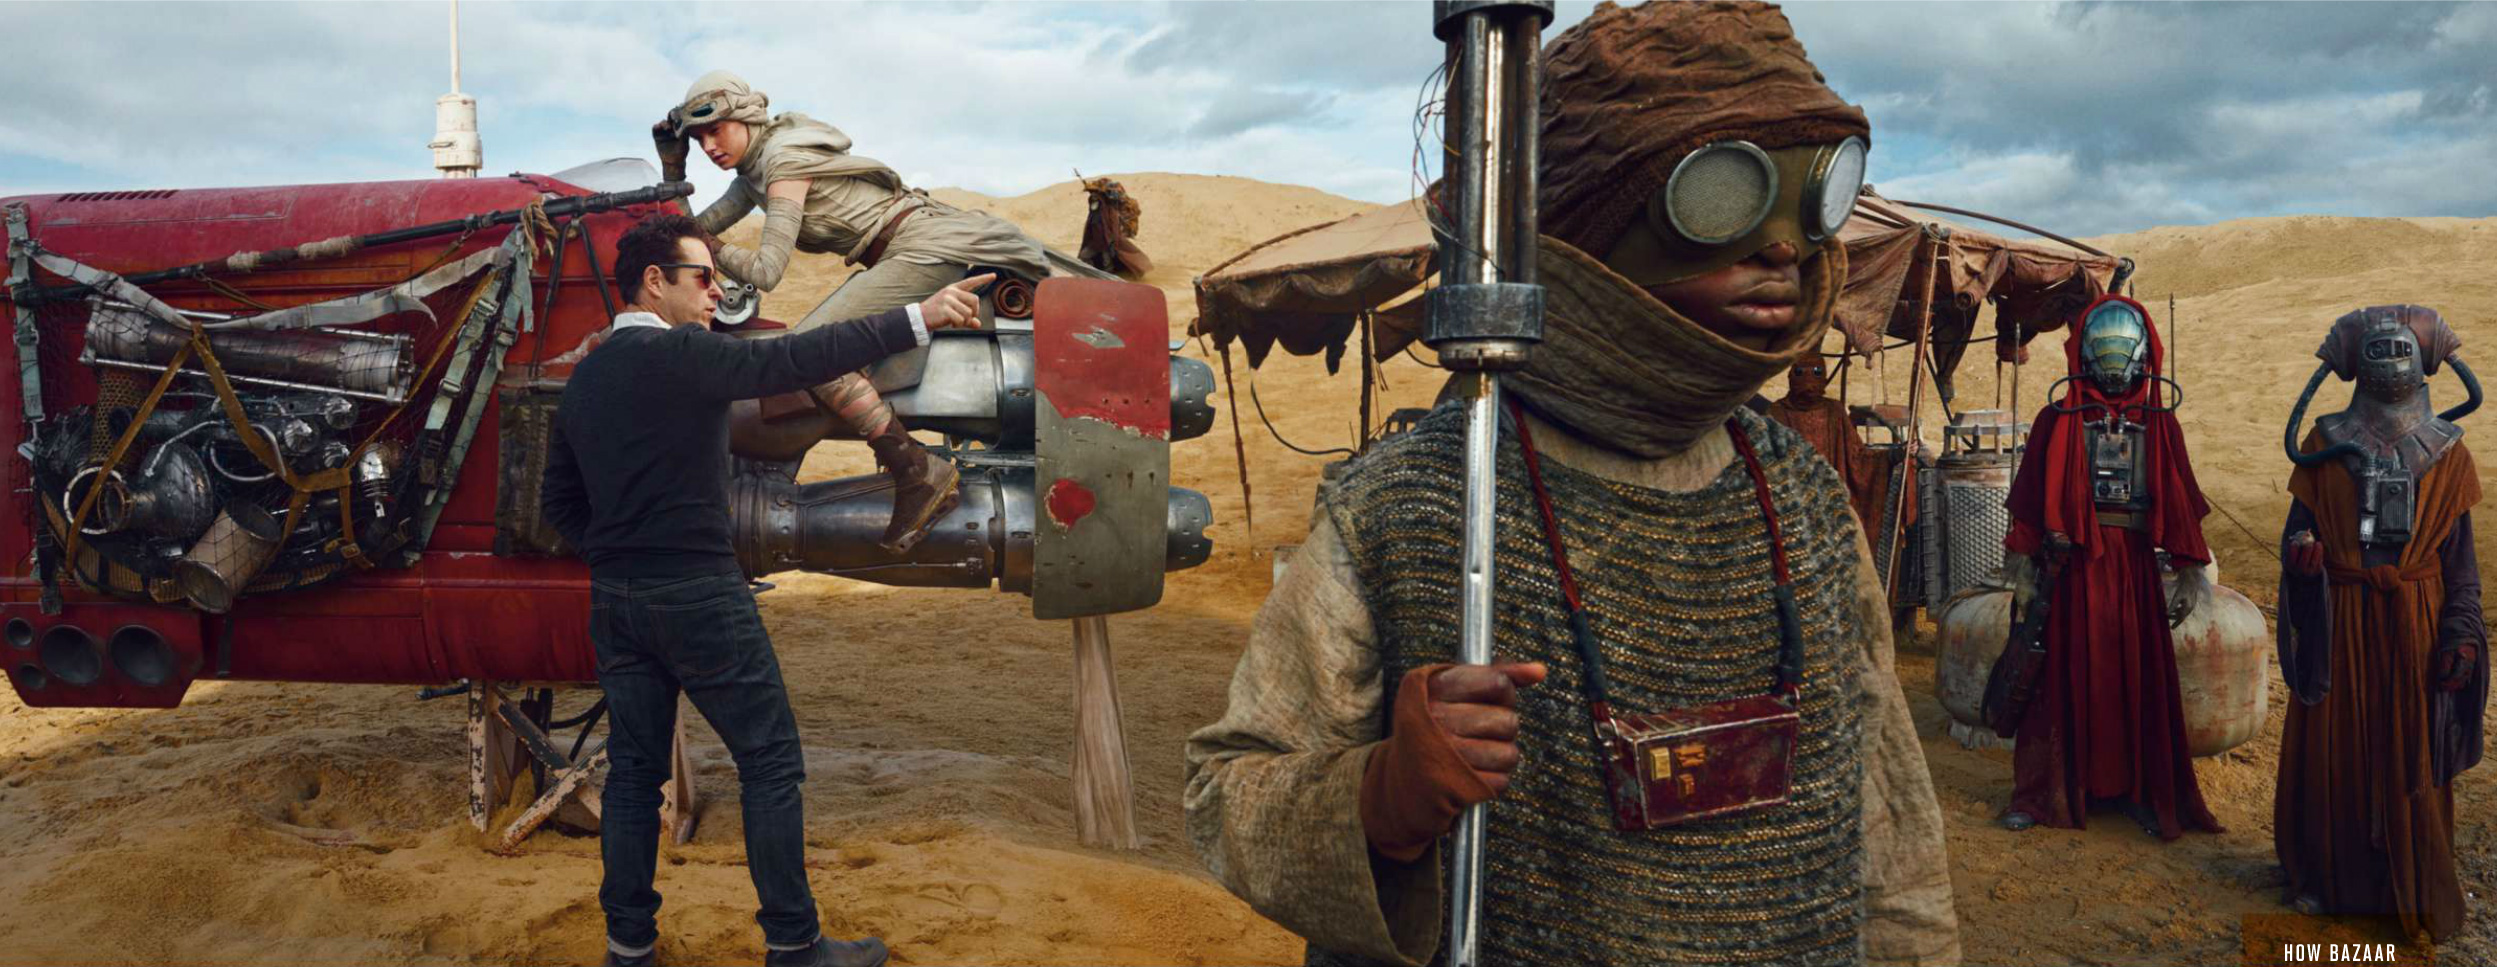 Sarco Plank in The Force Awakens